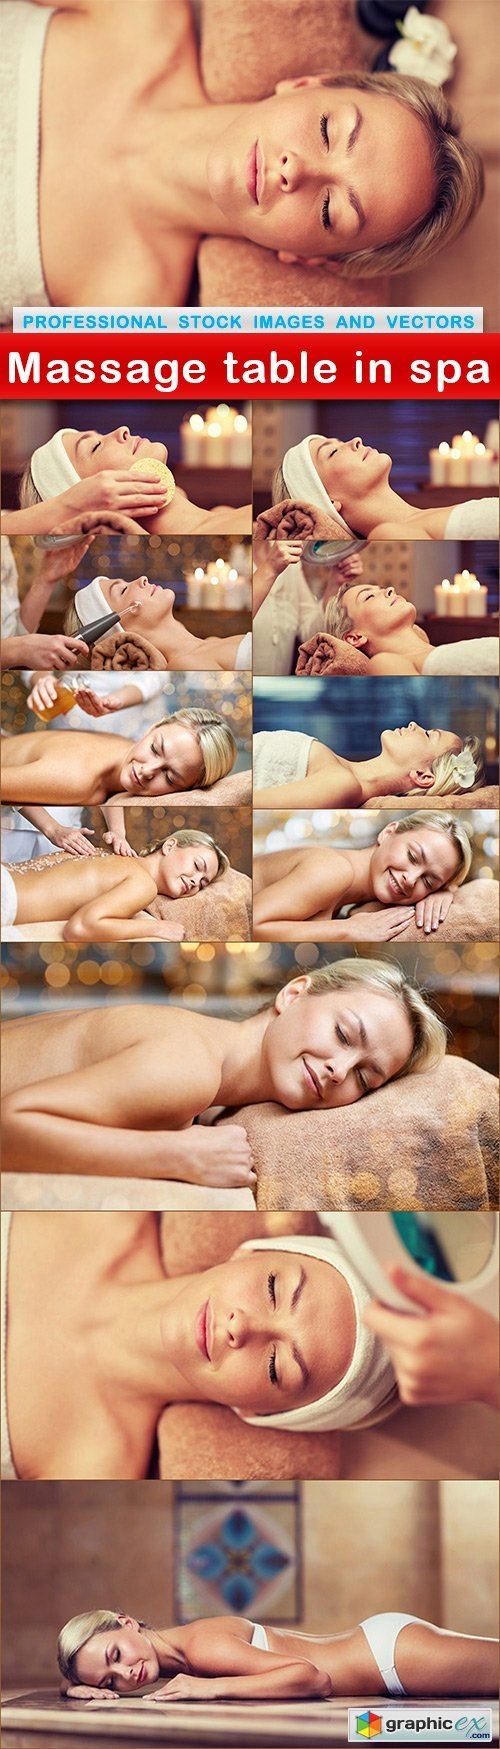 Massage table in spa - 12 UHQ JPEG